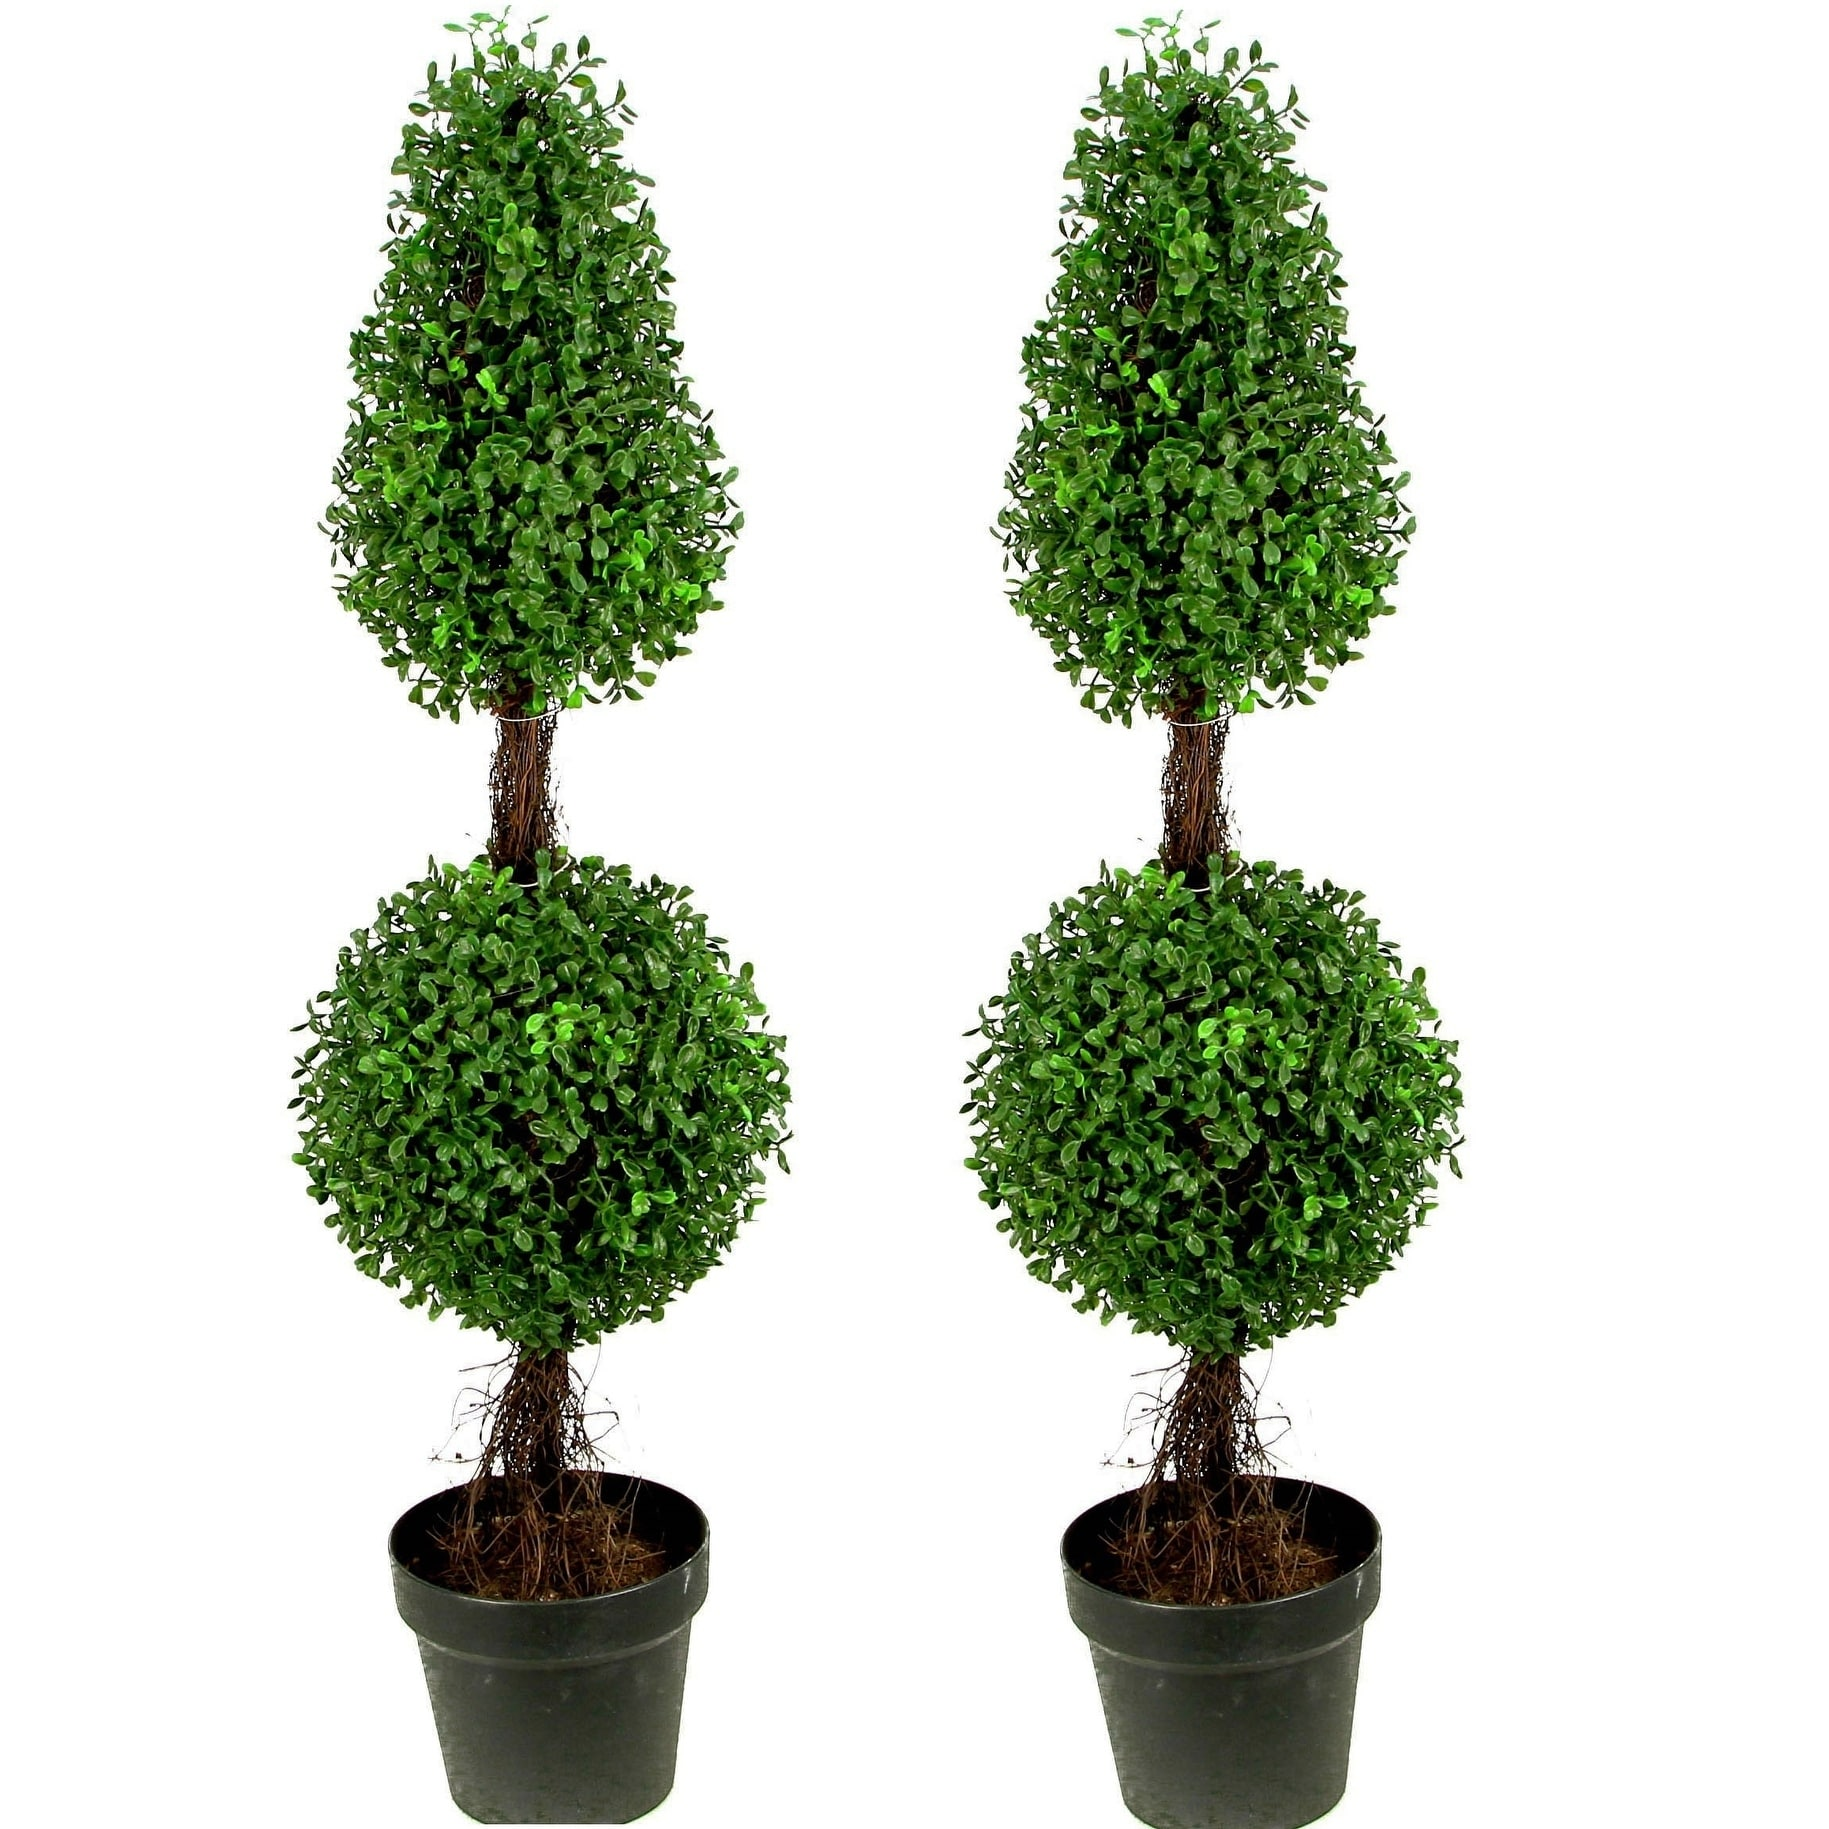 Artificial Double Ball Boxwood 3 Topiary Plant Tree In Pot Set Of 2 Black Overstock 12972556